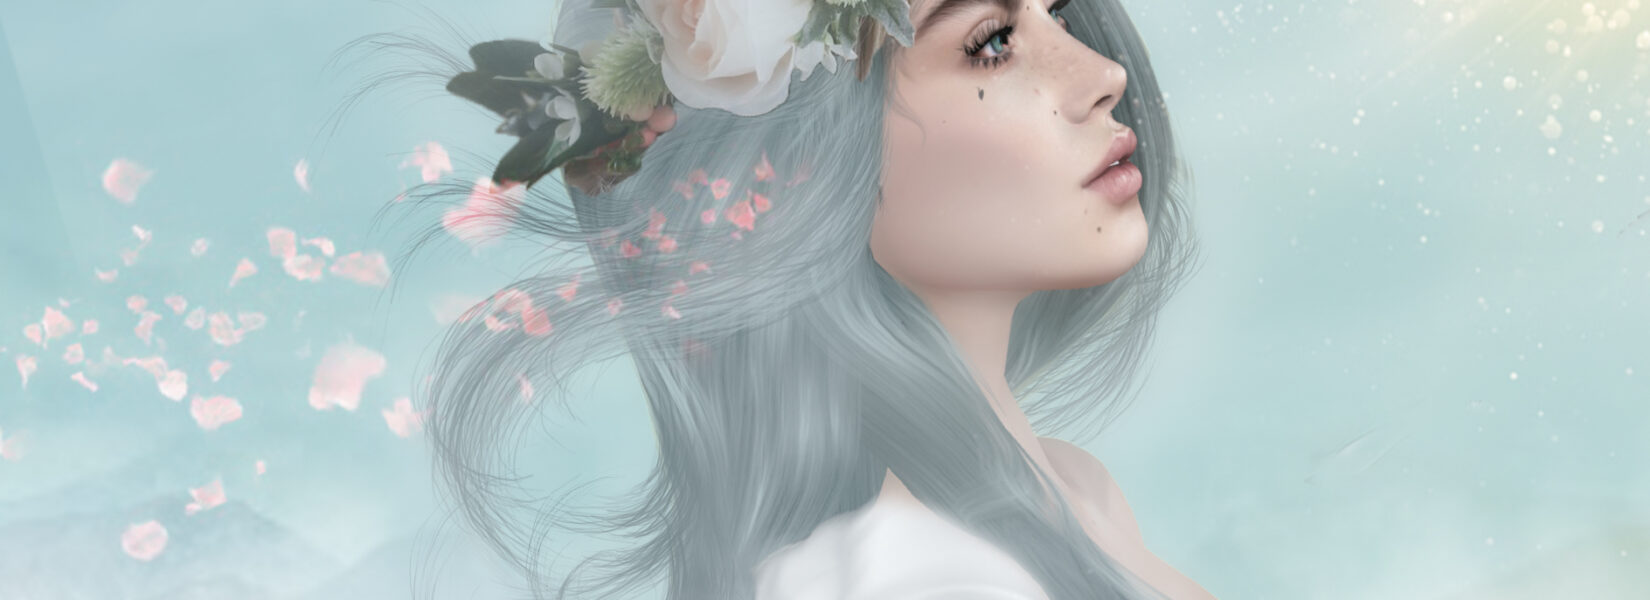 Flickr of the day: Dryad Eloise